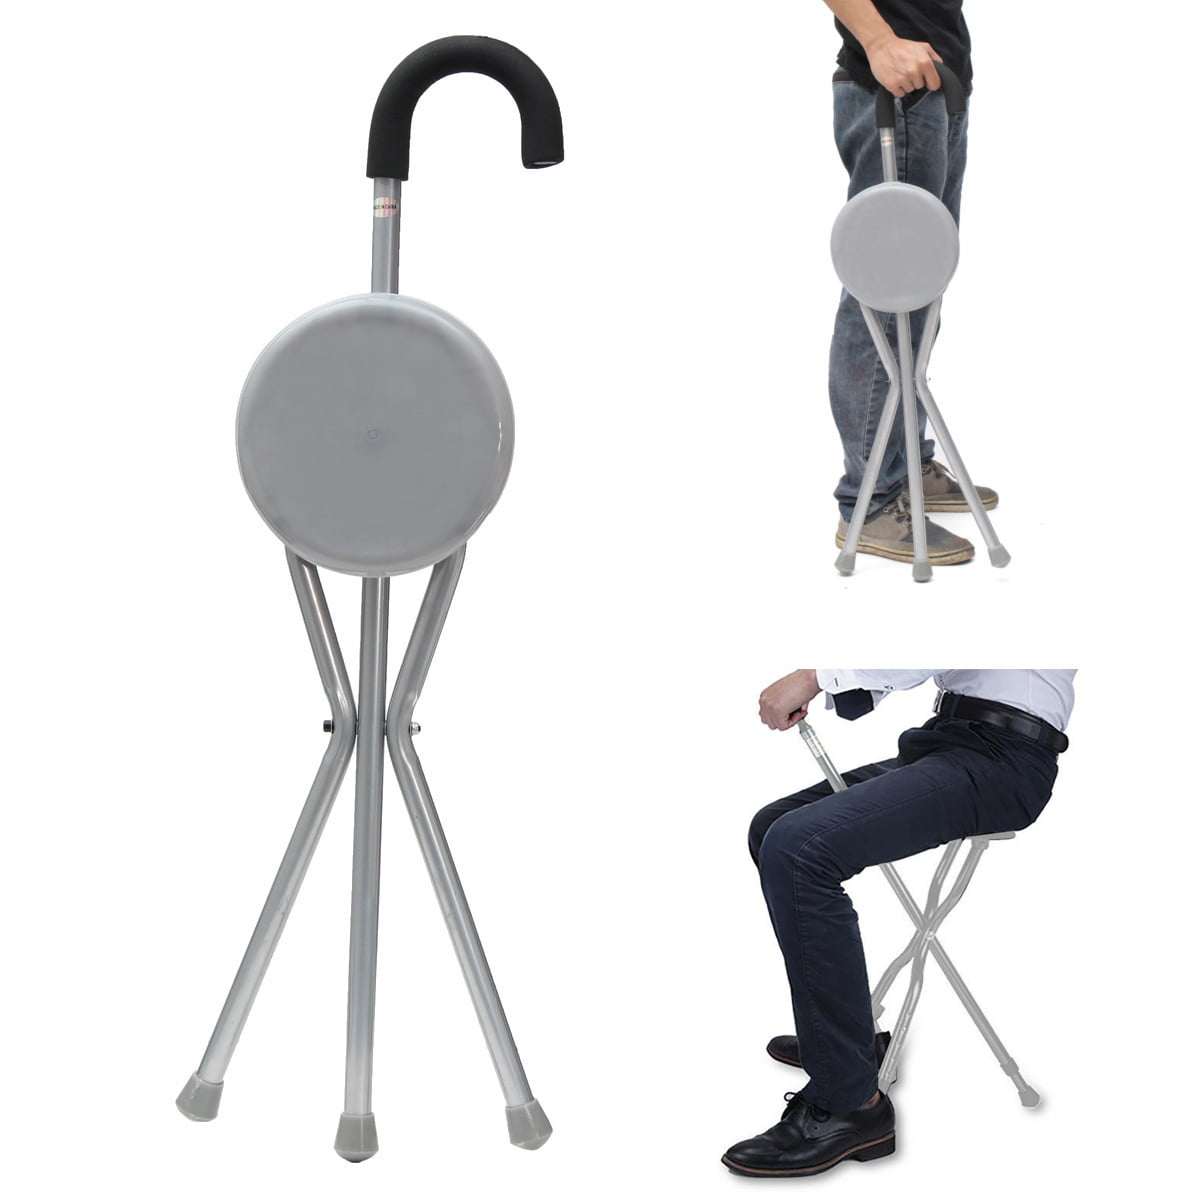 Folding cane seat walking aids products supplier malaysia